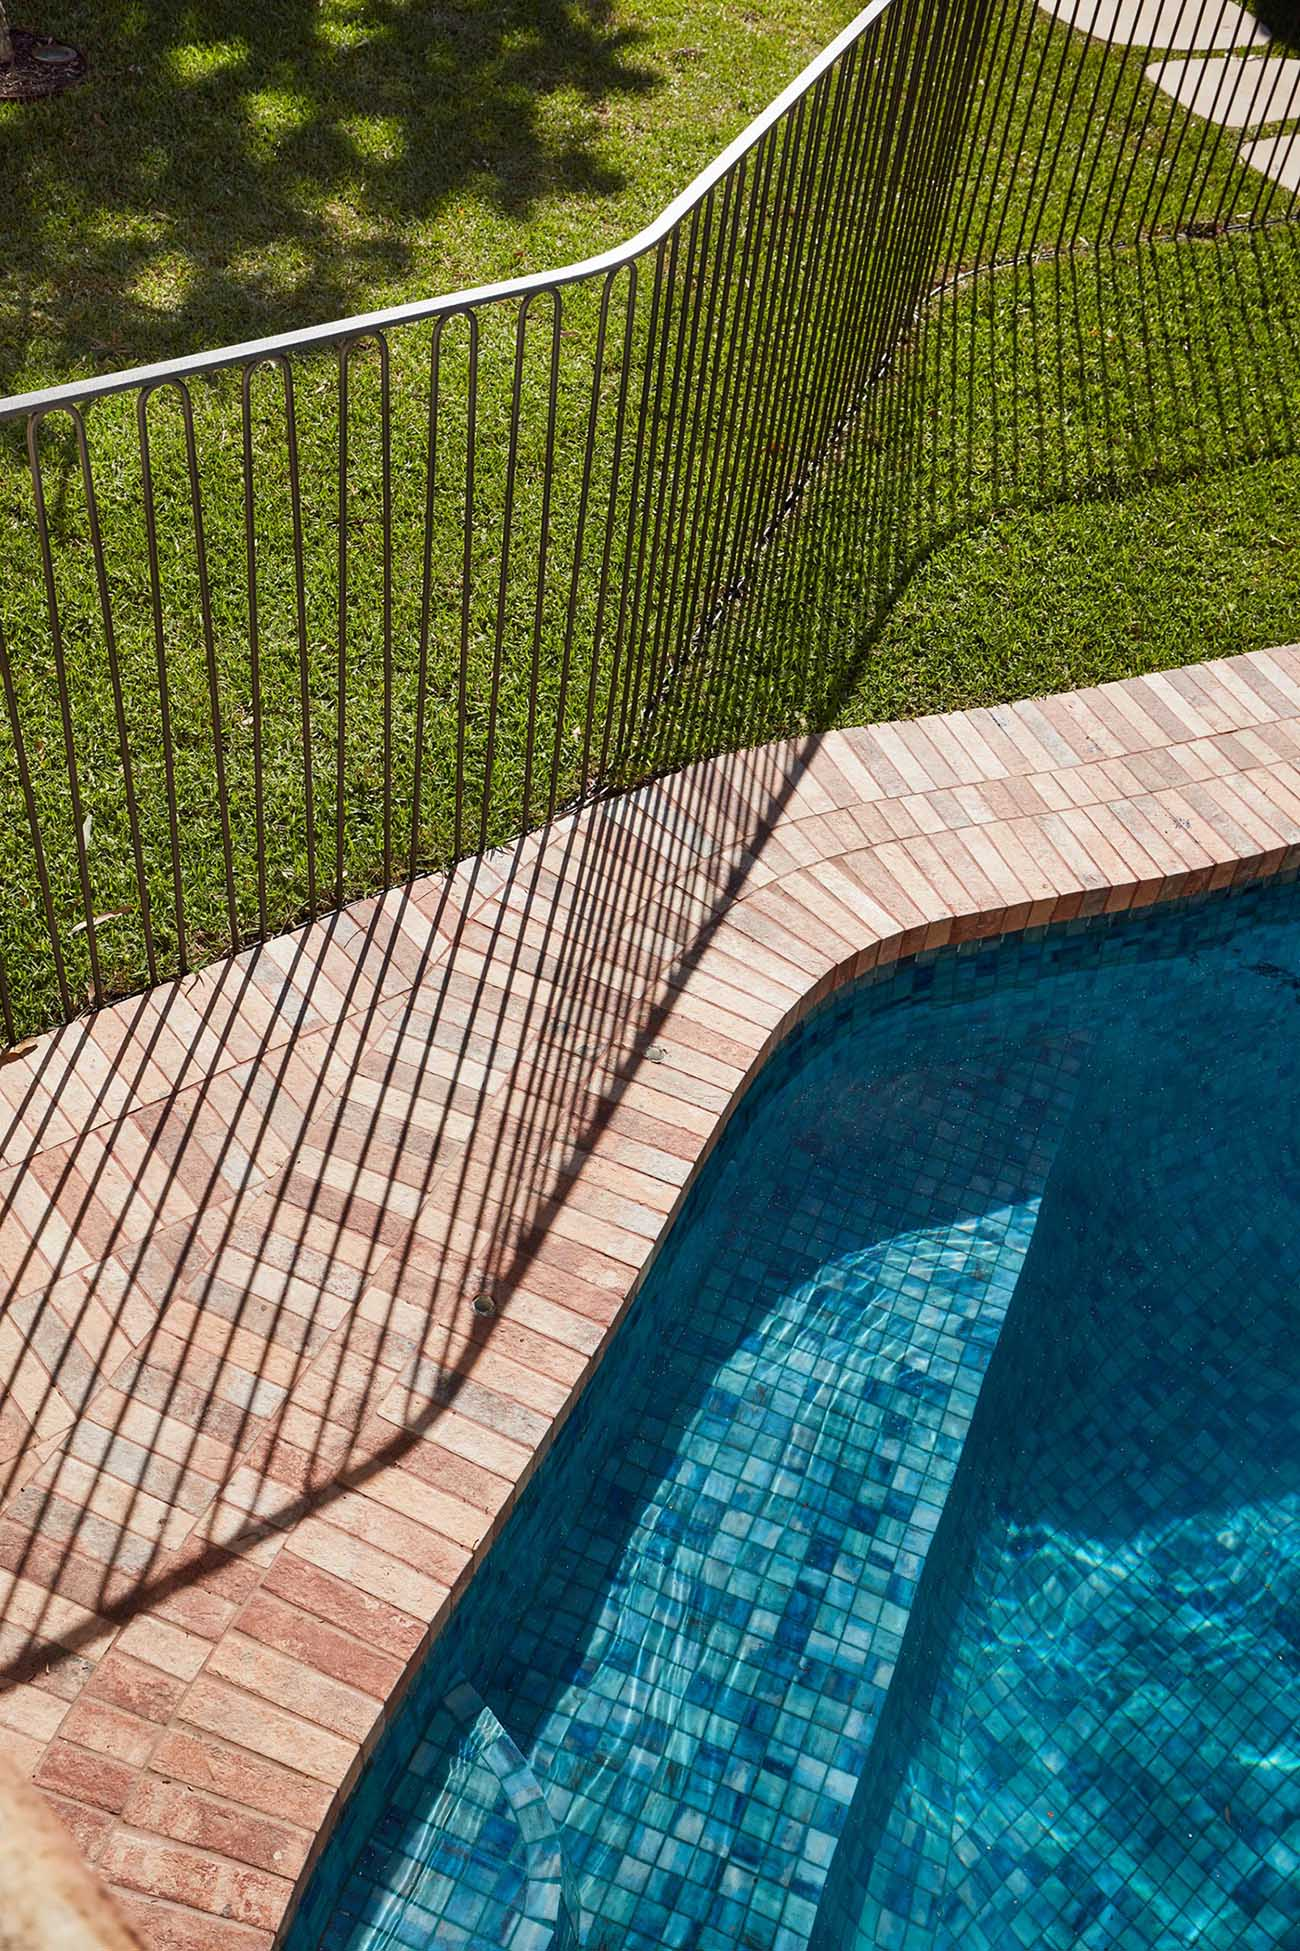 A modern safety fence surrounds a swimming pool.